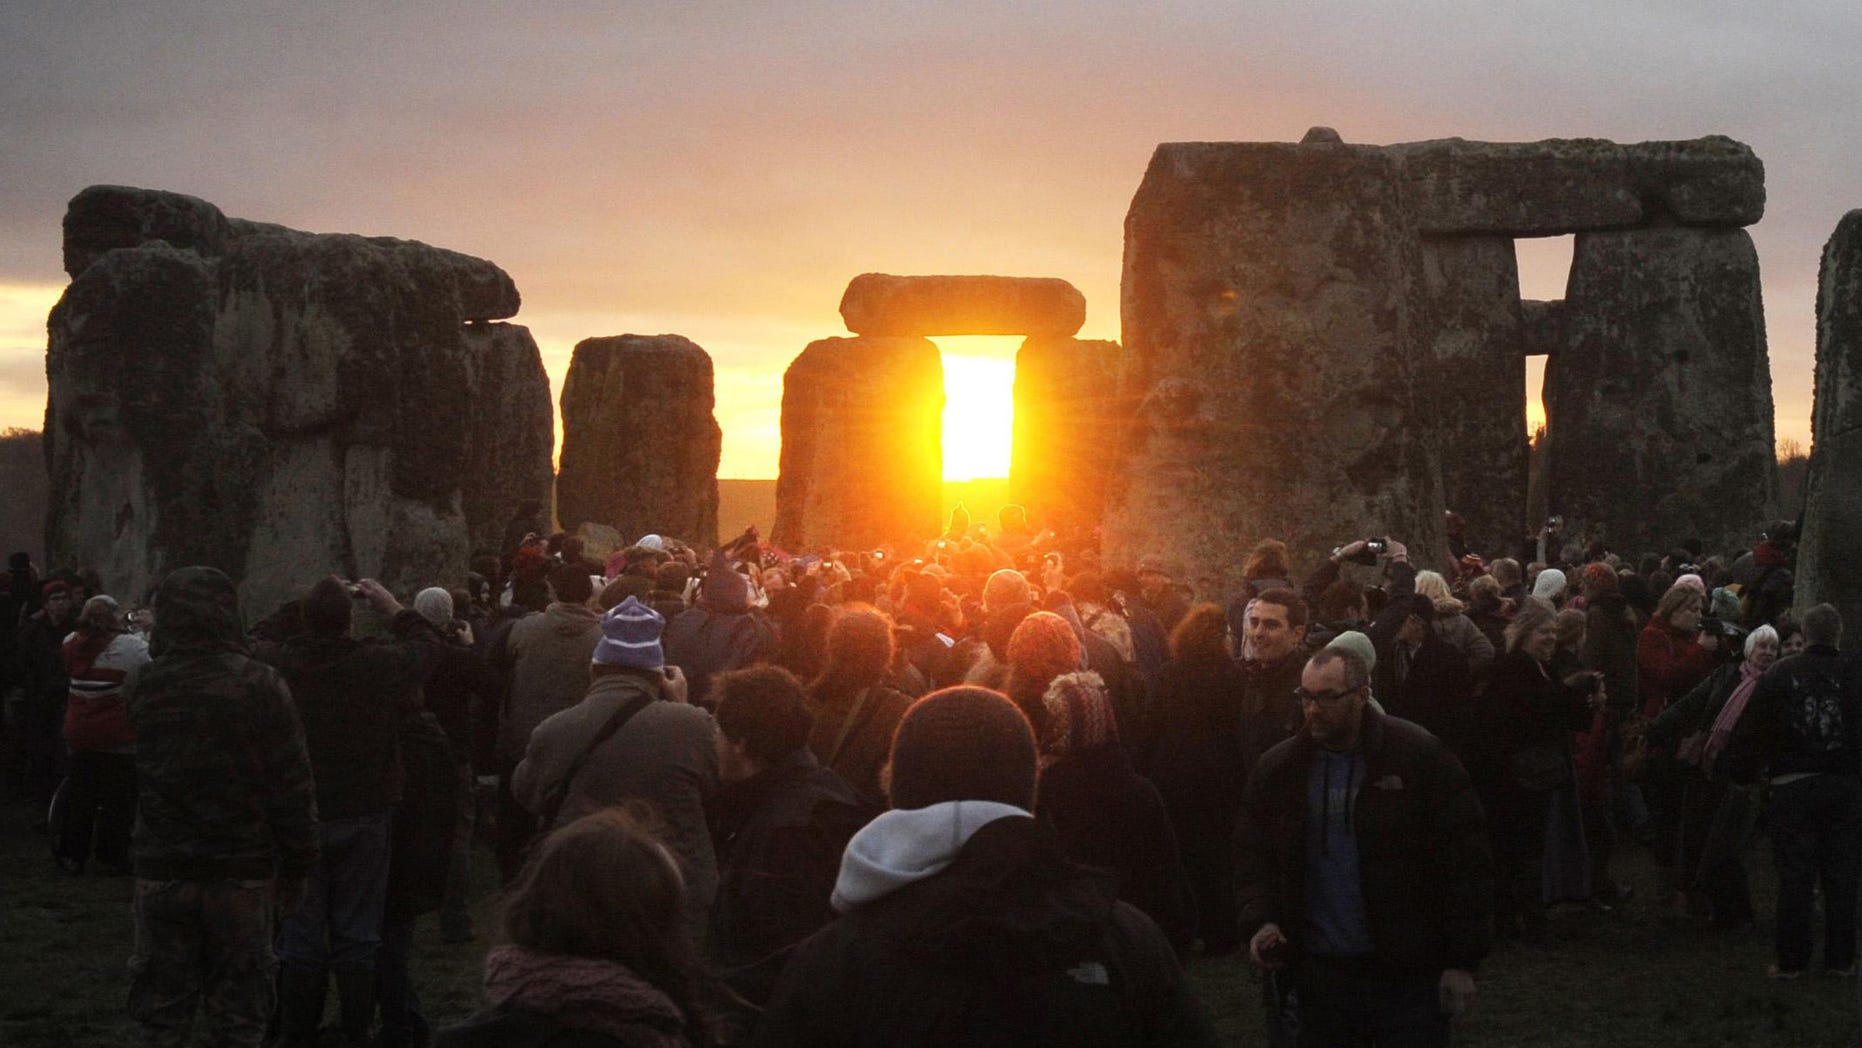 ALTERNATIVE CROP LON816 - People watch the sunrise at the northern Winter Solstice celebration at Stonehenge in Wiltshire, Thursday, Dec. 22, 2011. The omens are good that 2012 will be an excellent year, a druid said today, after the sun shone on Stonehenge during a dawn ceremony to mark the winter solstice. One of the most famous sites in the world, Stonehenge is composed of a circular setting of large standing stones set within earthworks, believed to be thousands of years old. .  (AP Photo/Tim Ireland/PA) UNITED KINGDOM OUT  NO SALES  NO ARCHIVE